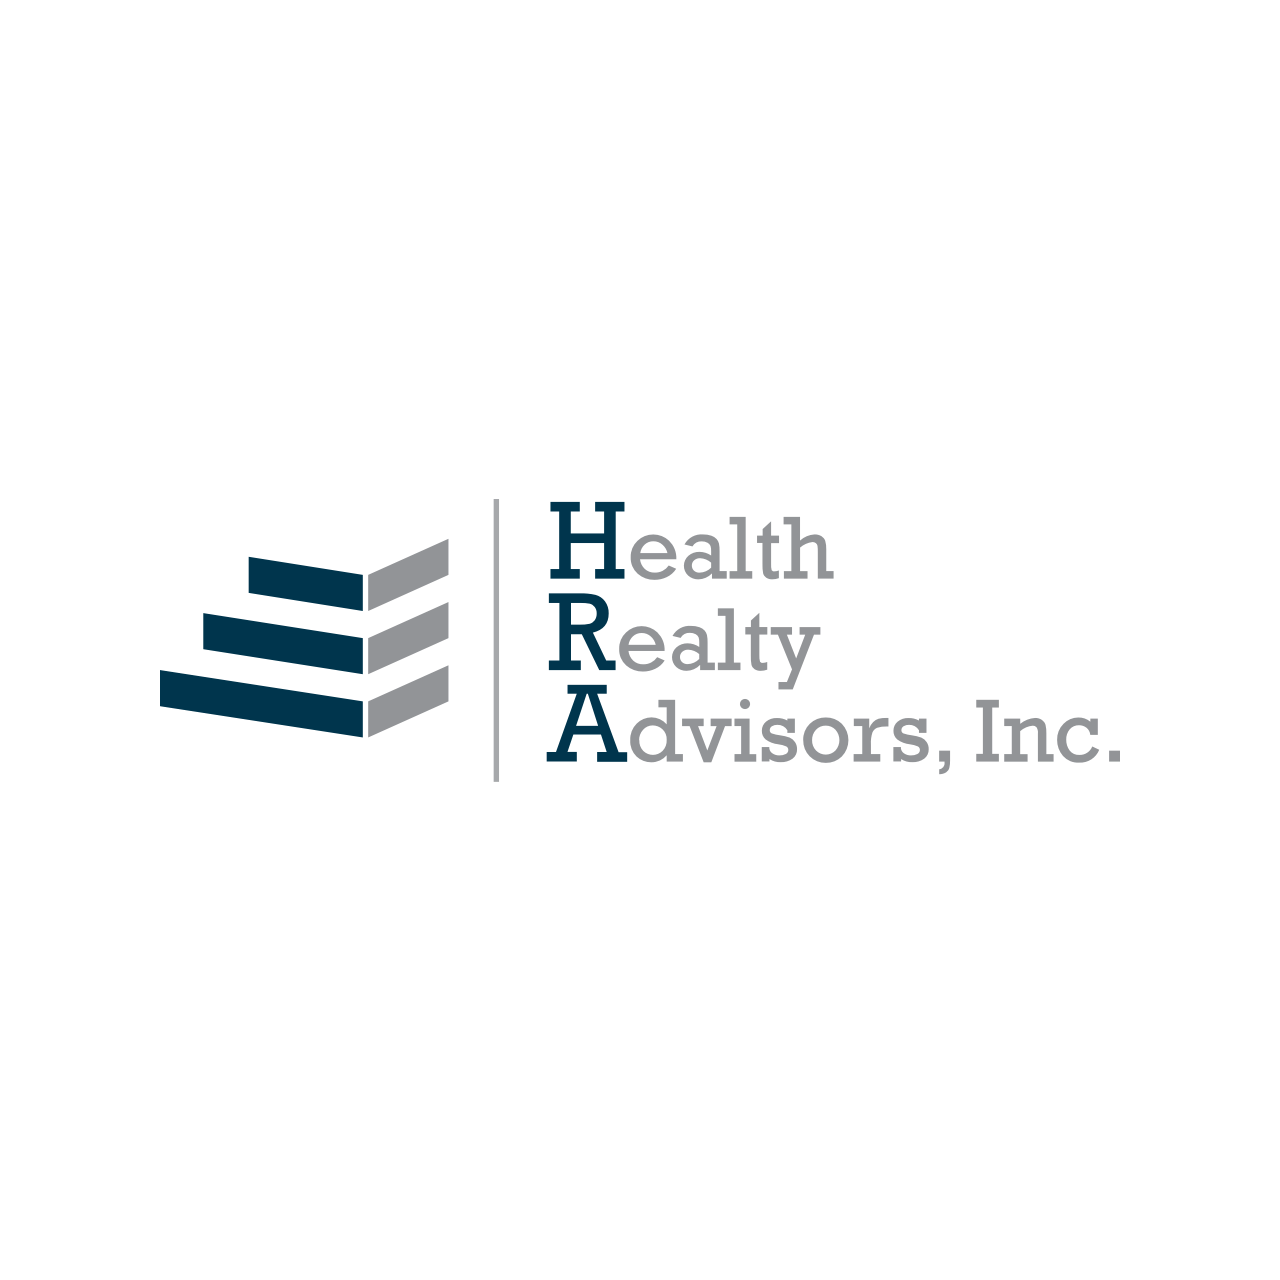 Health Reality Advisors